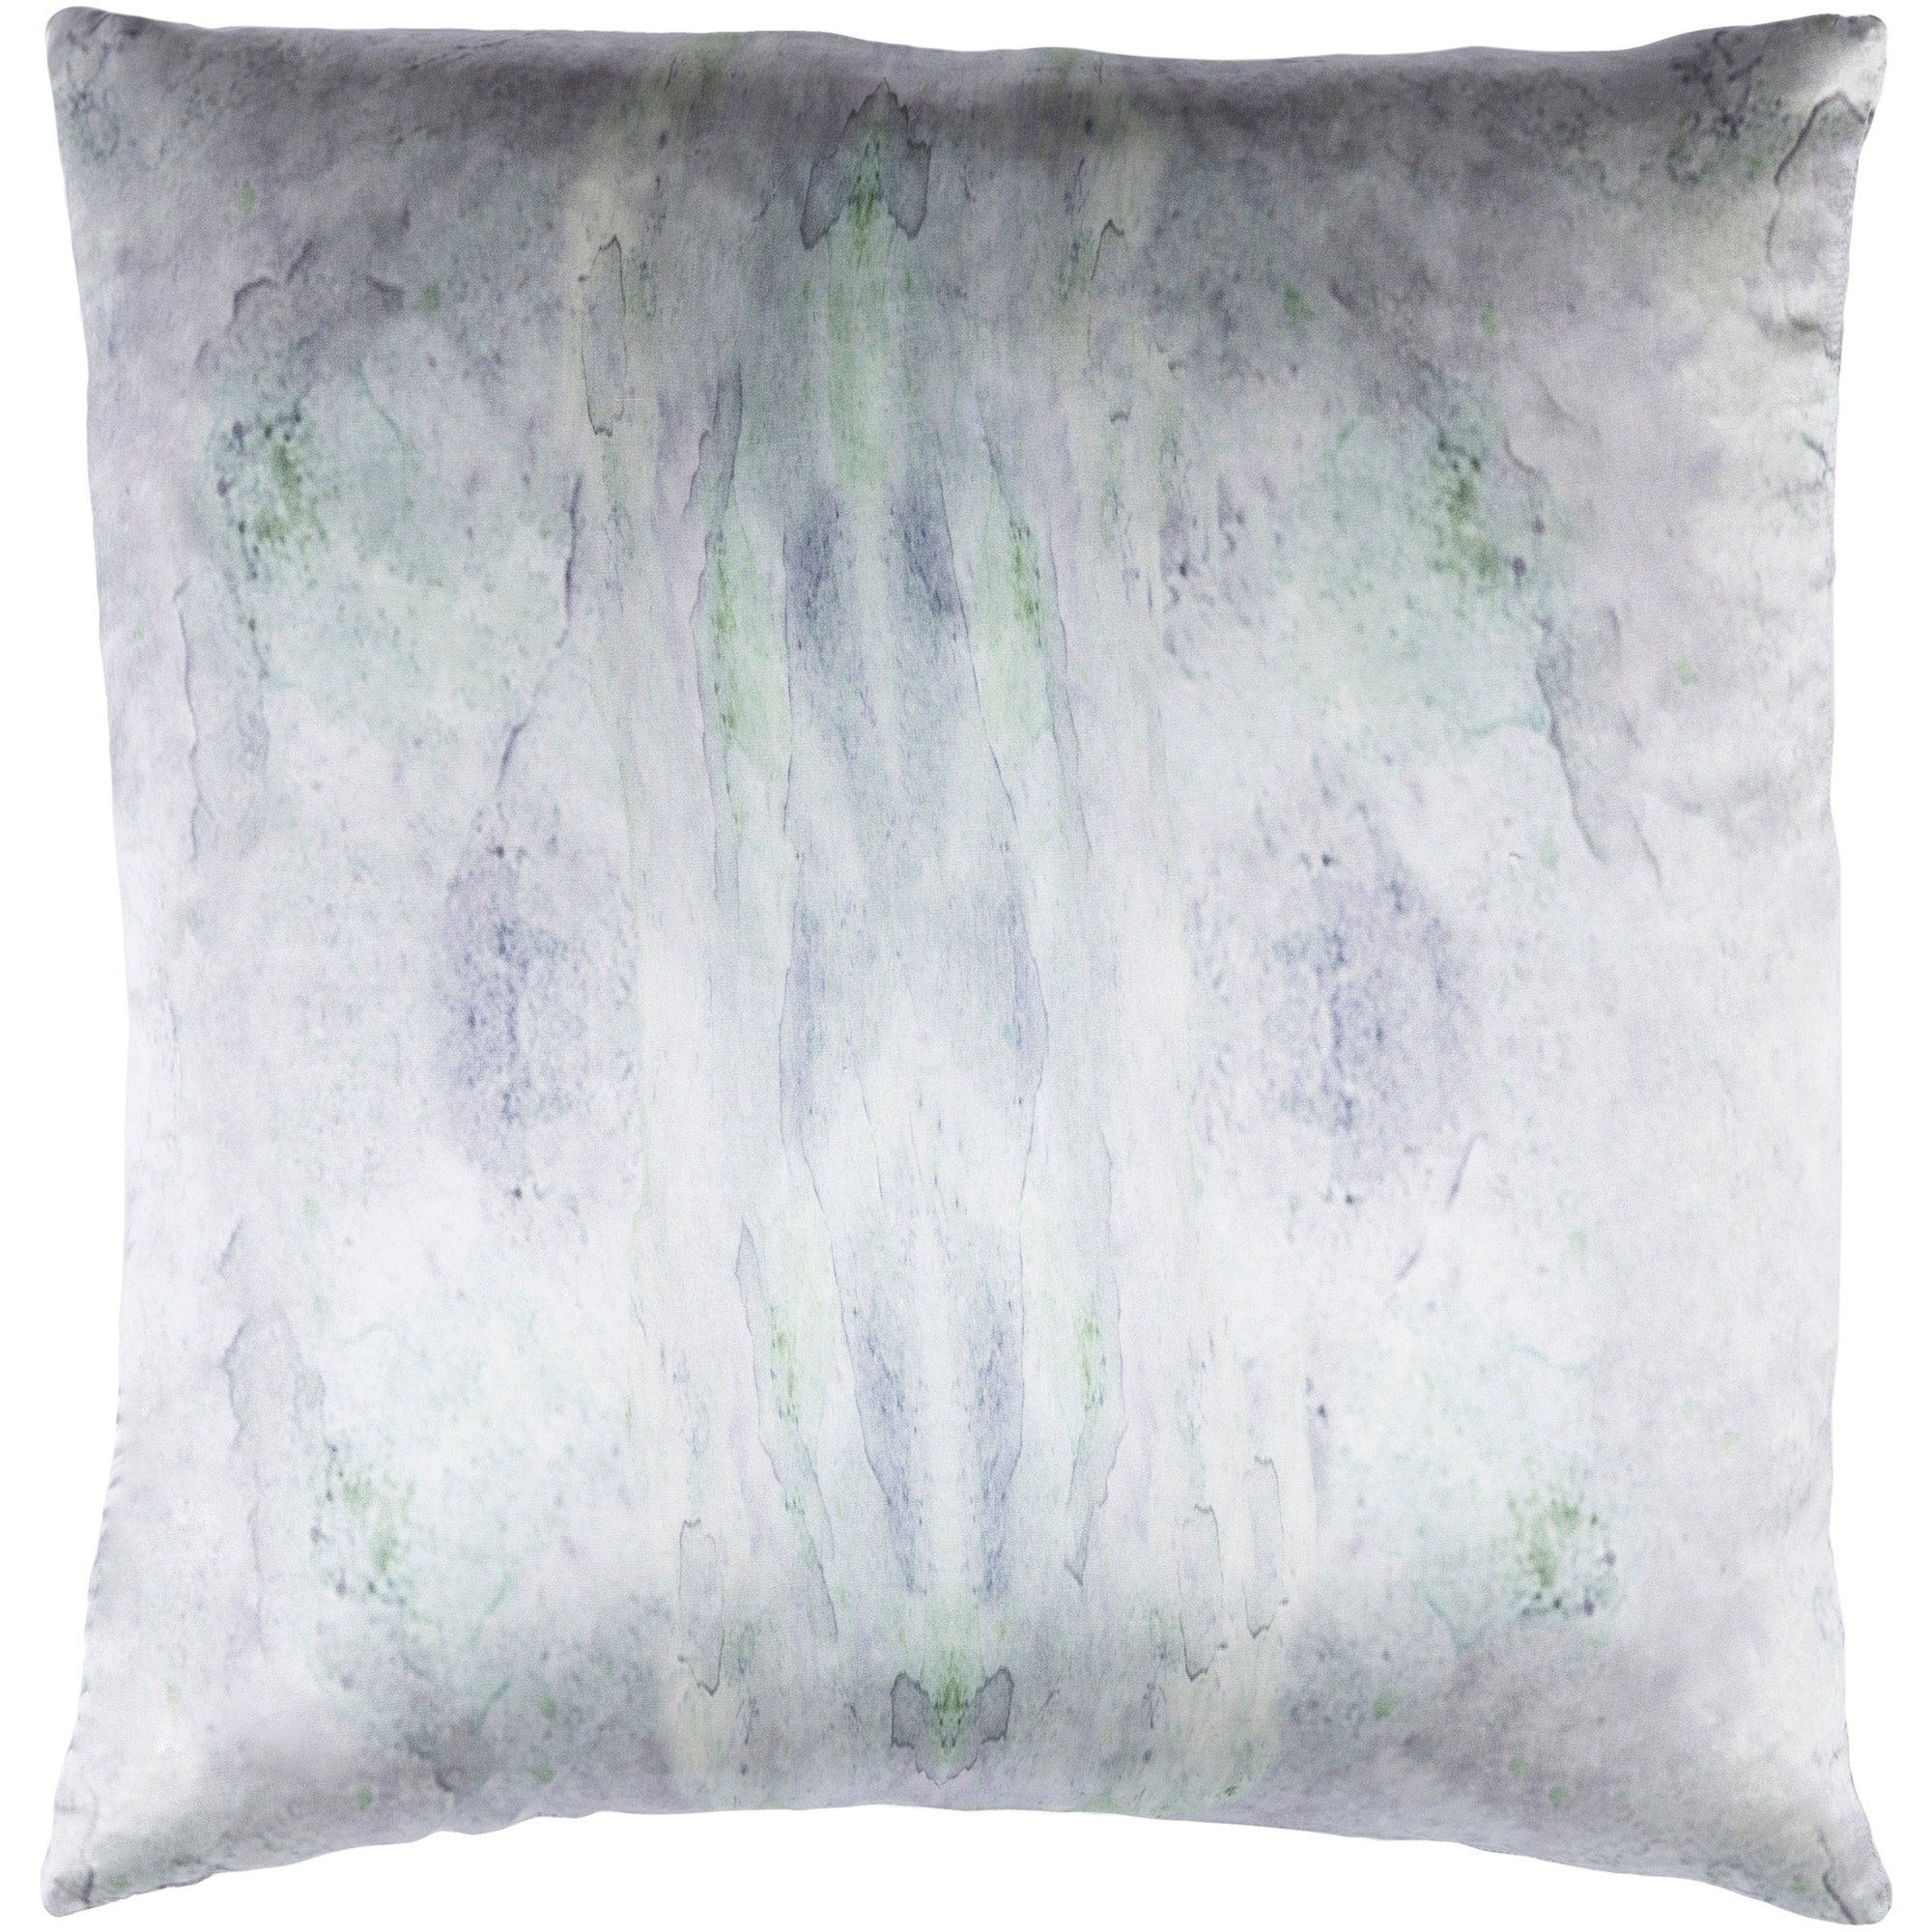 Provo Moss 22 Inch Throw Pillow Cover